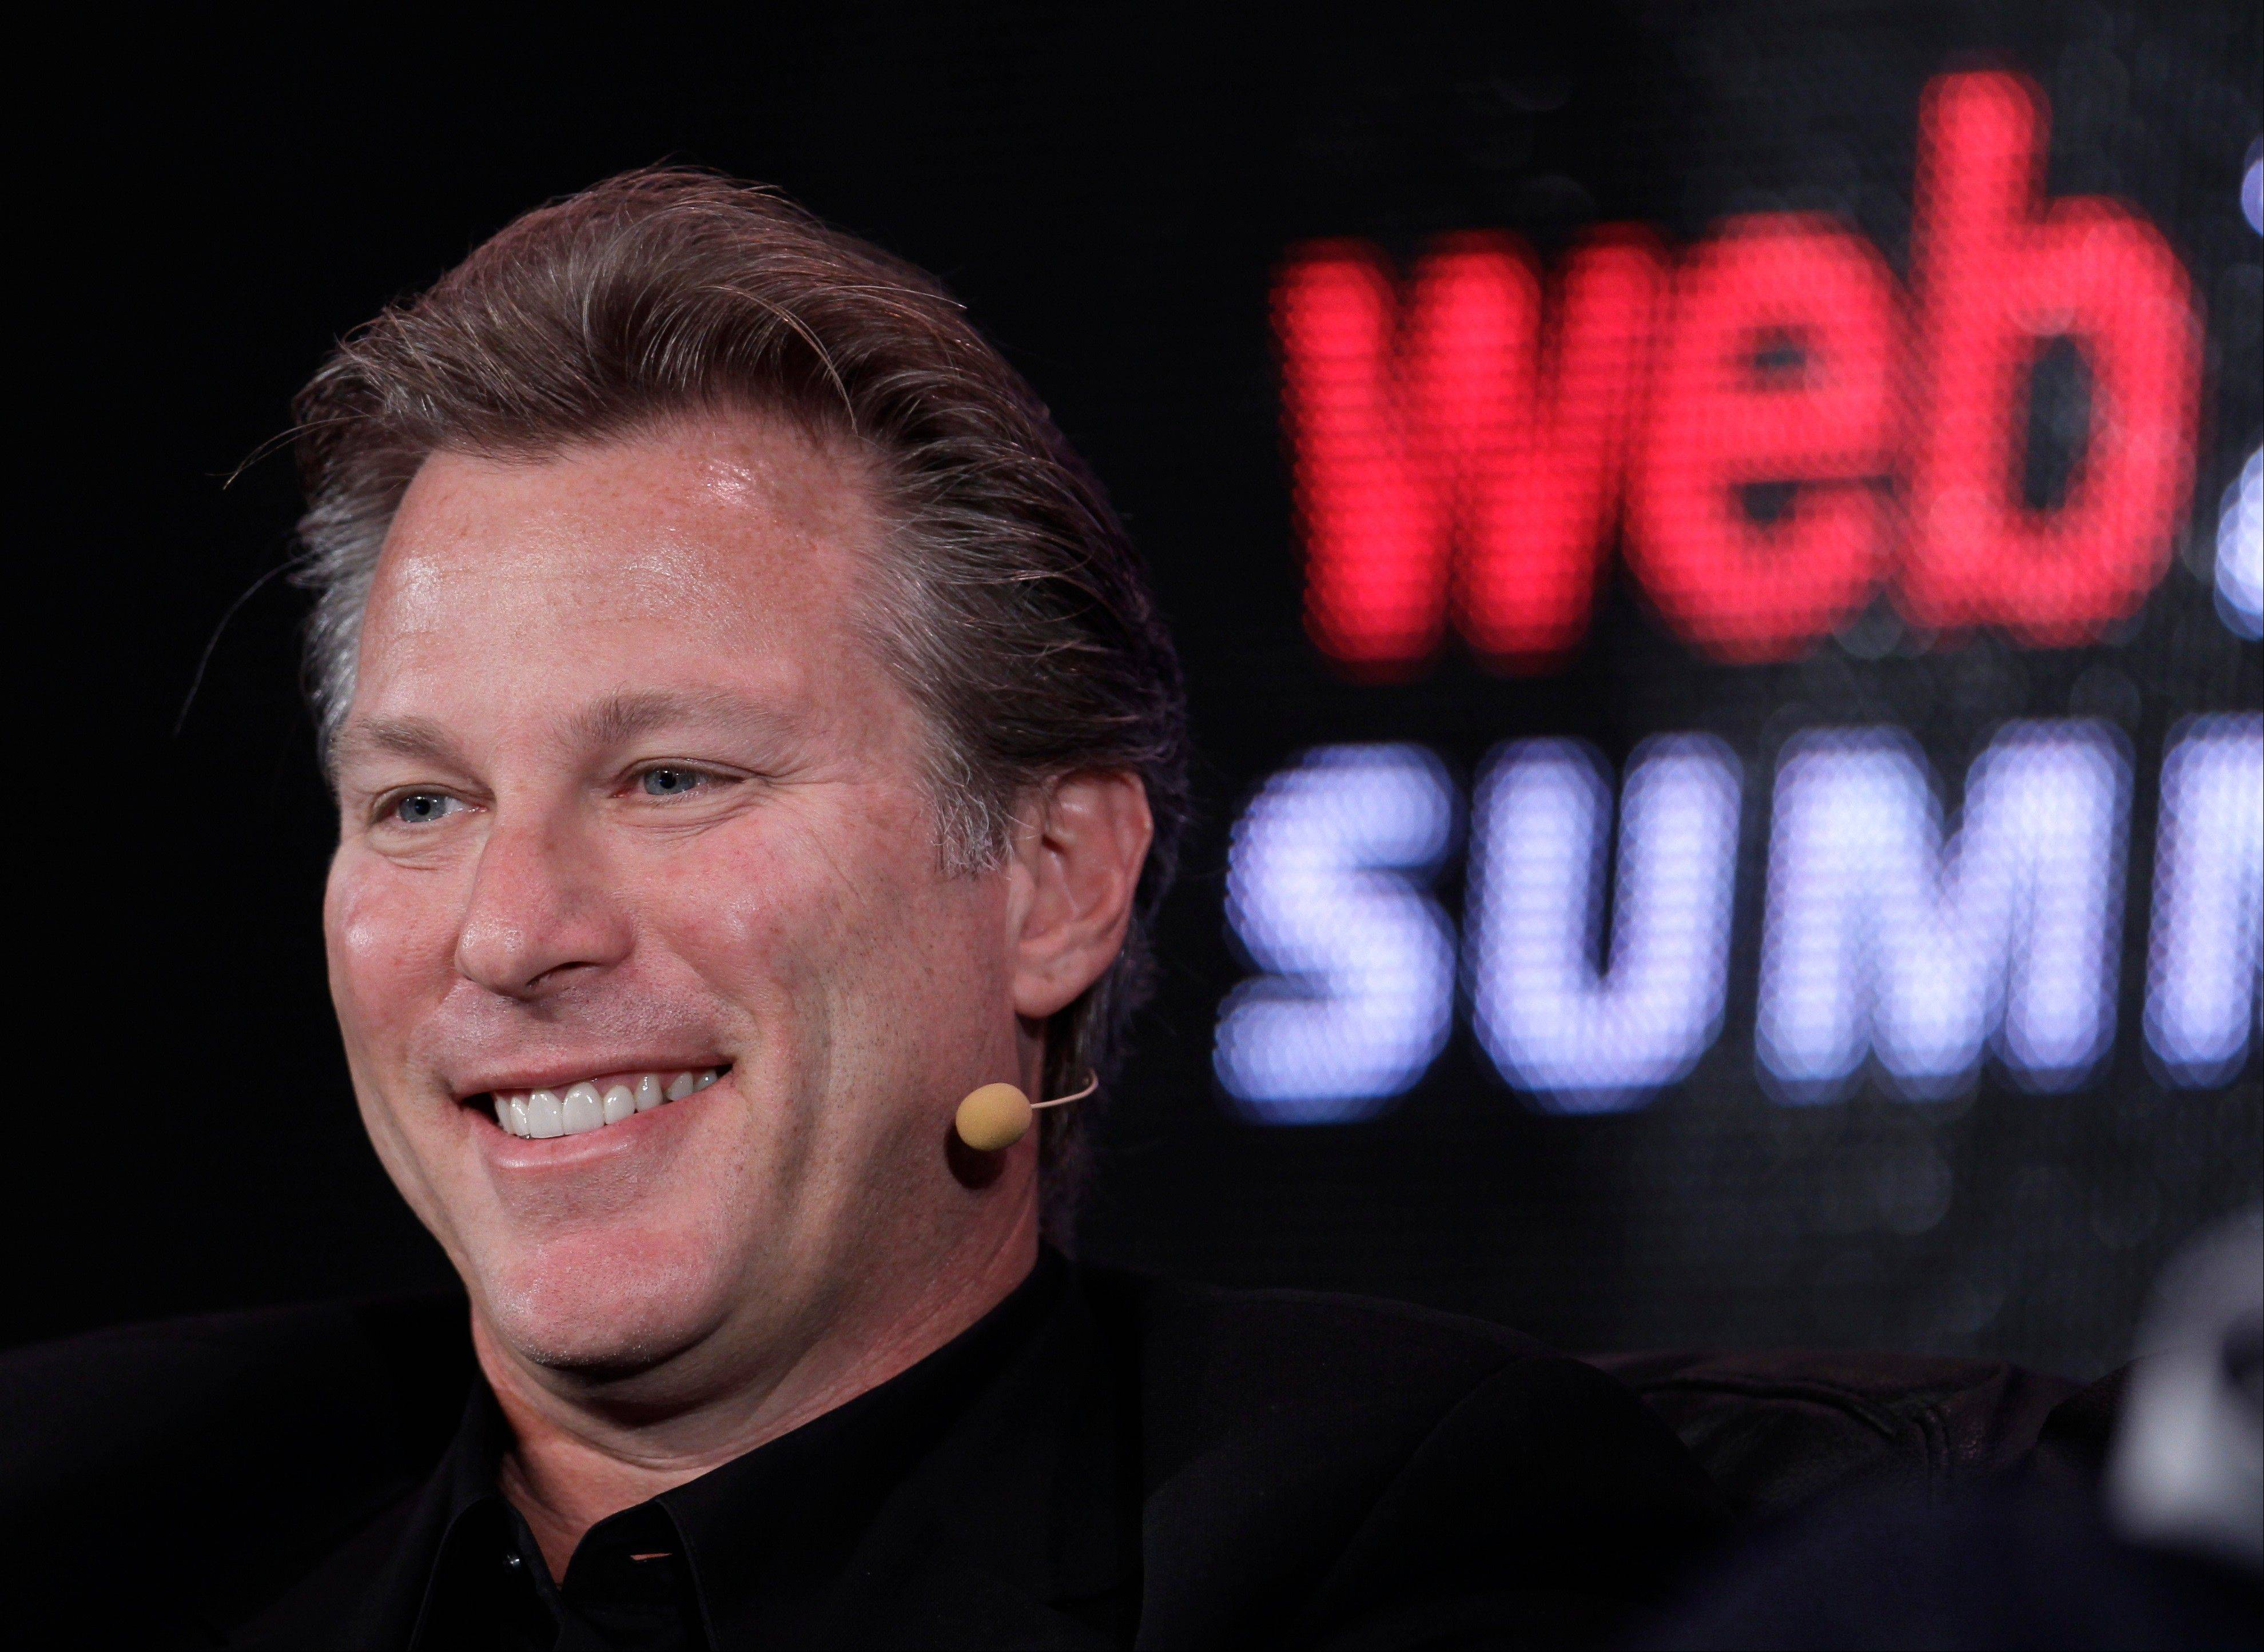 Ross Levinsohn, who was interim chief executive officer at Yahoo, is leaving after the board passed him over for the top job and unexpectedly recruited Marissa Mayer, a former Google executive.